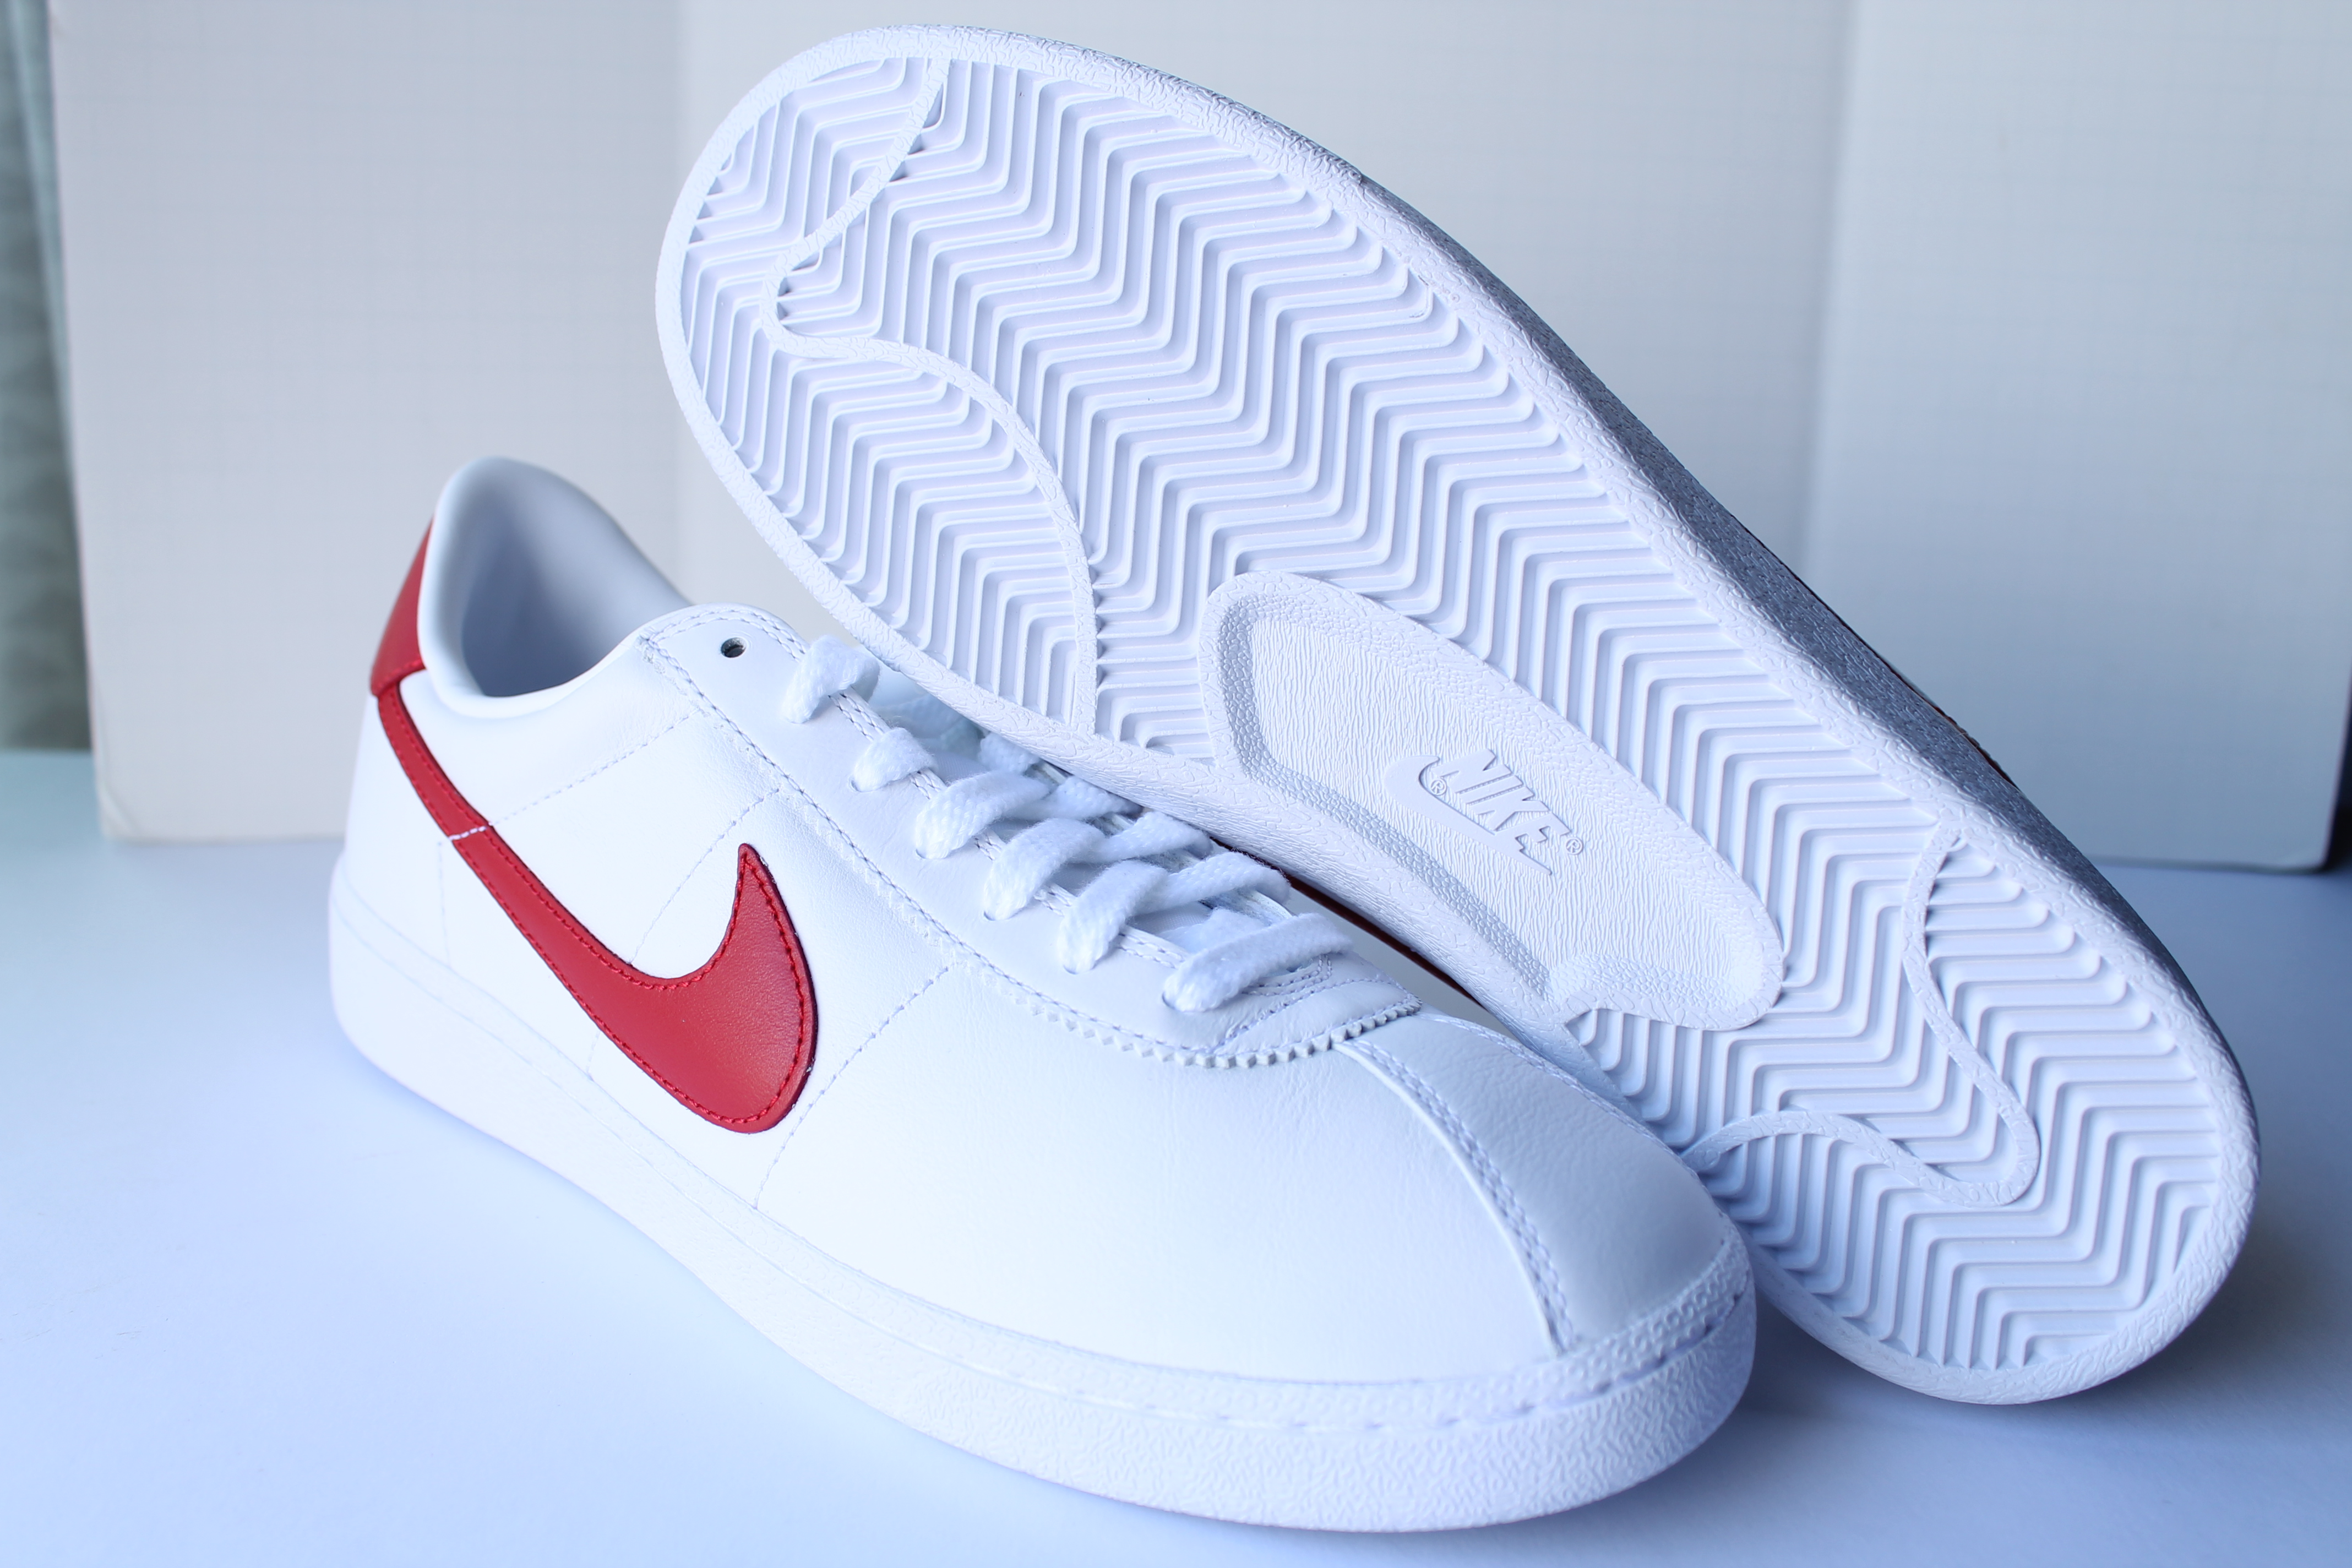 superior quality 34c0d e6465 ... cheapest nike bruin leather marty mcfly back to the future 1985 db4a5  a5dff